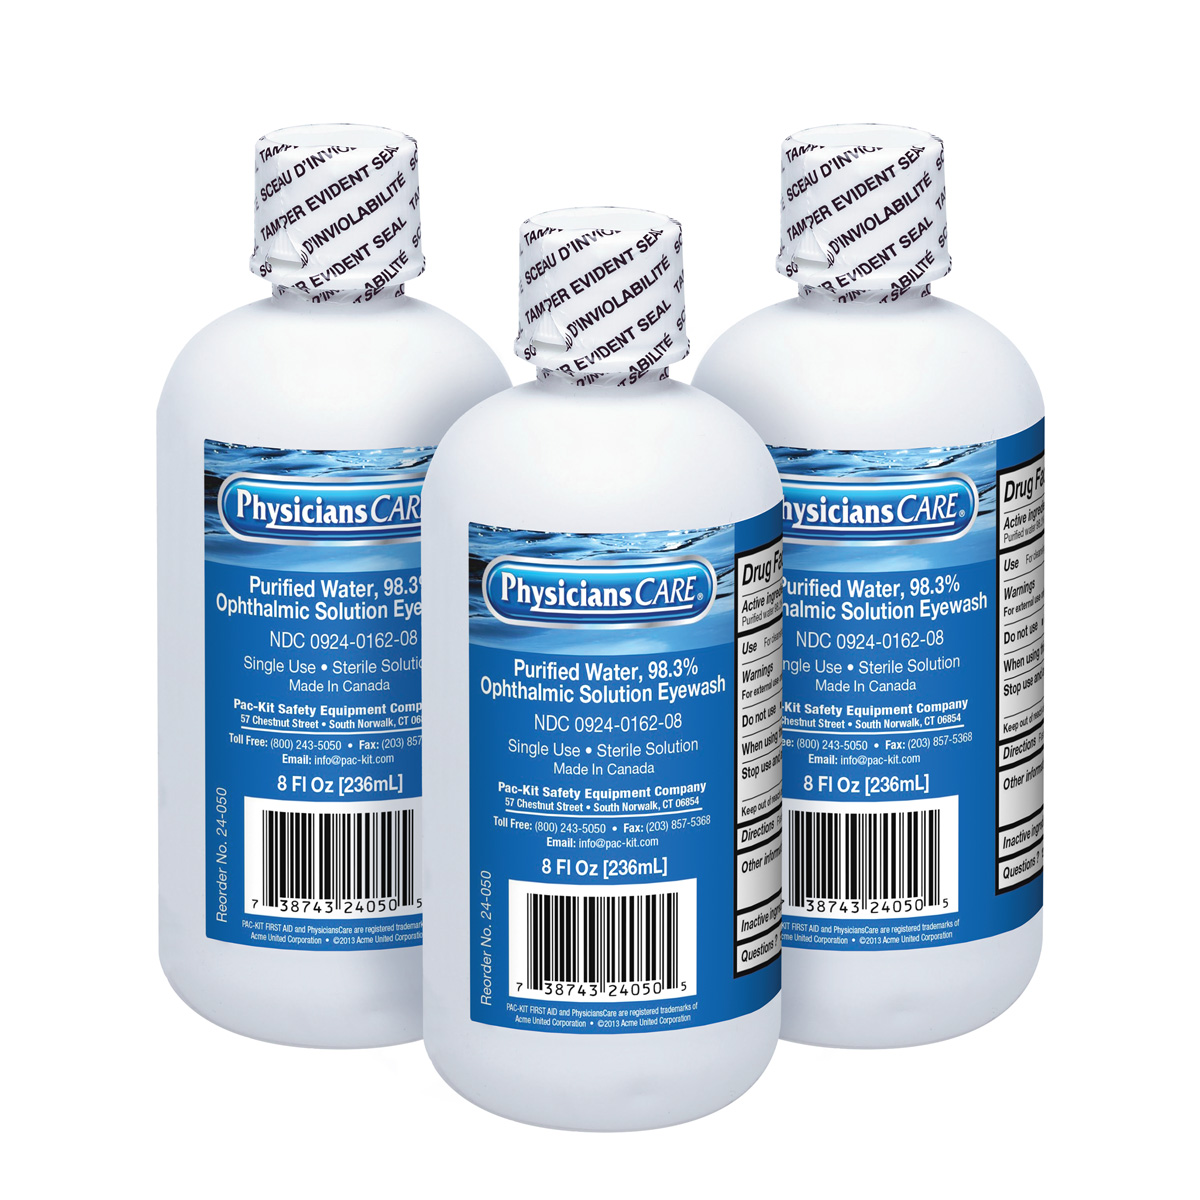 PhysiciansCare Eye Wash Bottle, 8 oz. Screw Cap (3 Count)